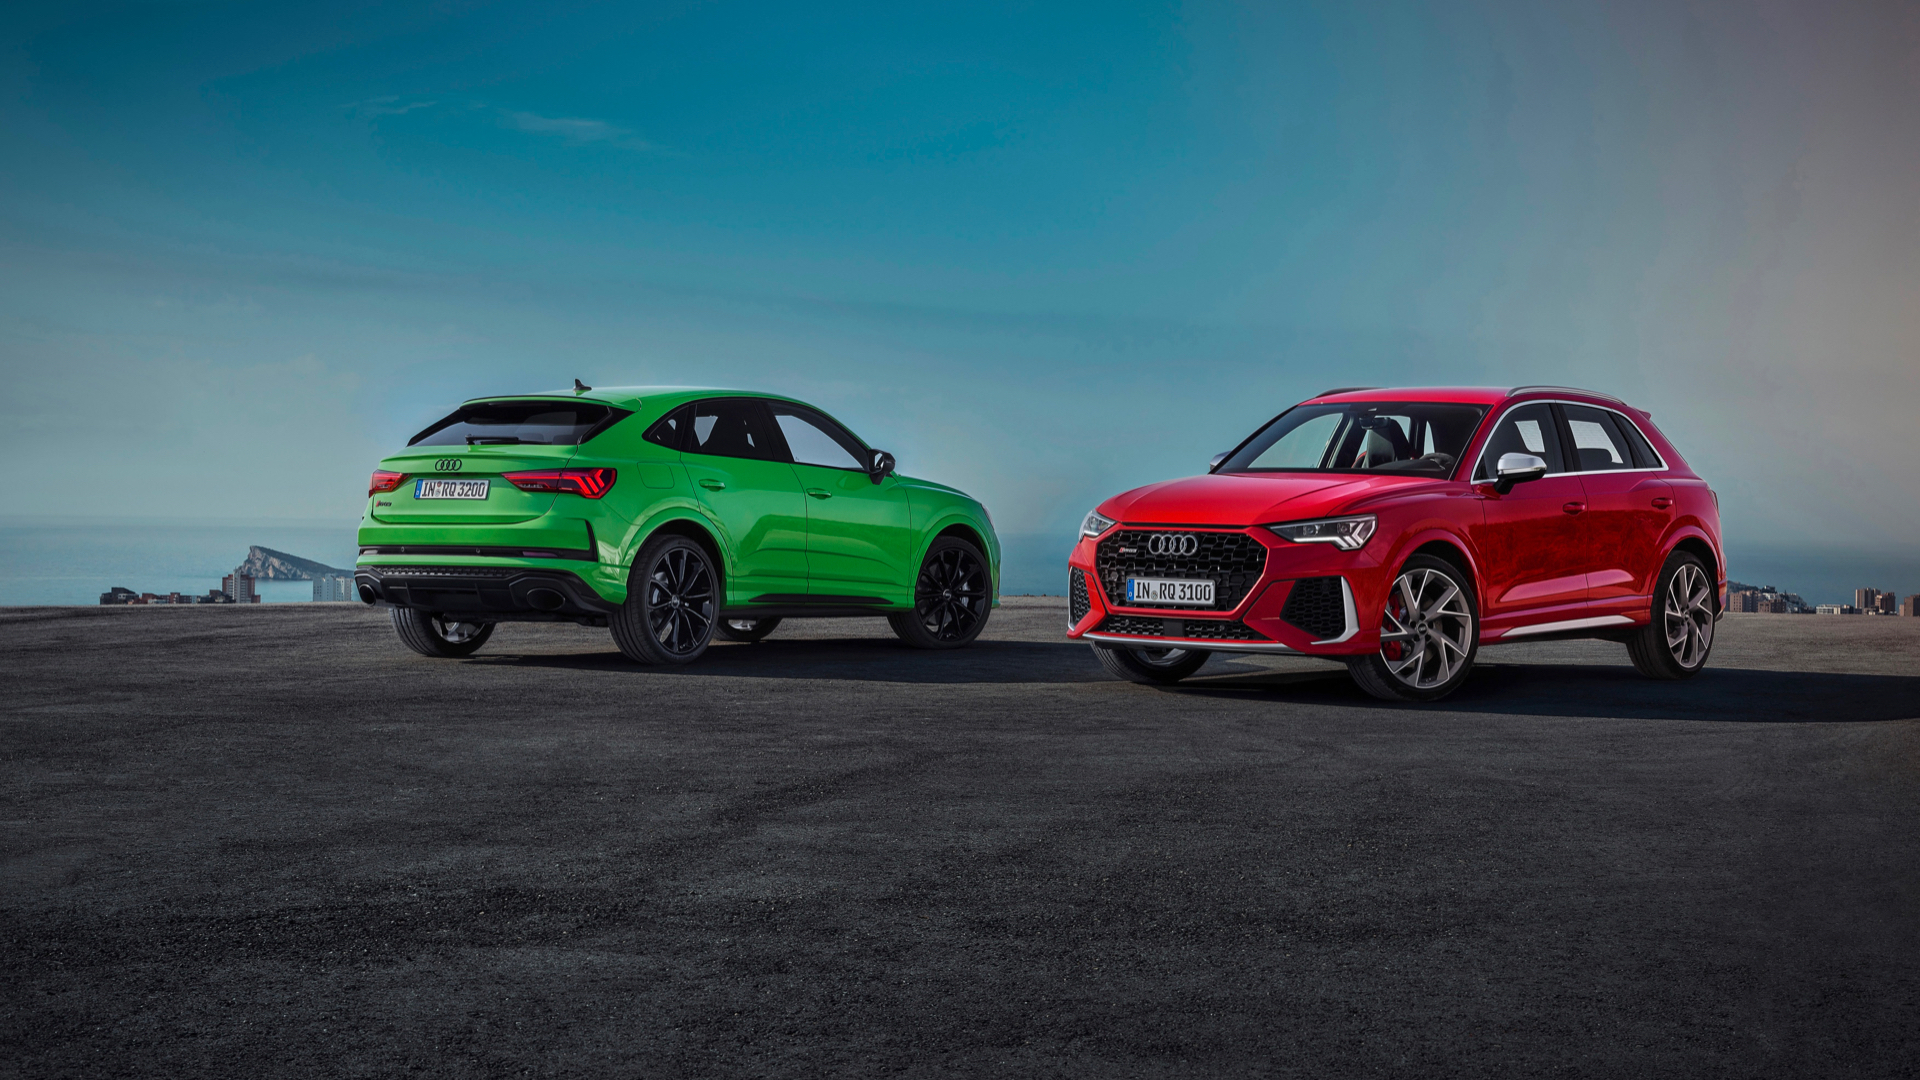 Compact Power Packs Audi Rs Q3 And Audi Rs Q3 Sportback Audi Mediacenter